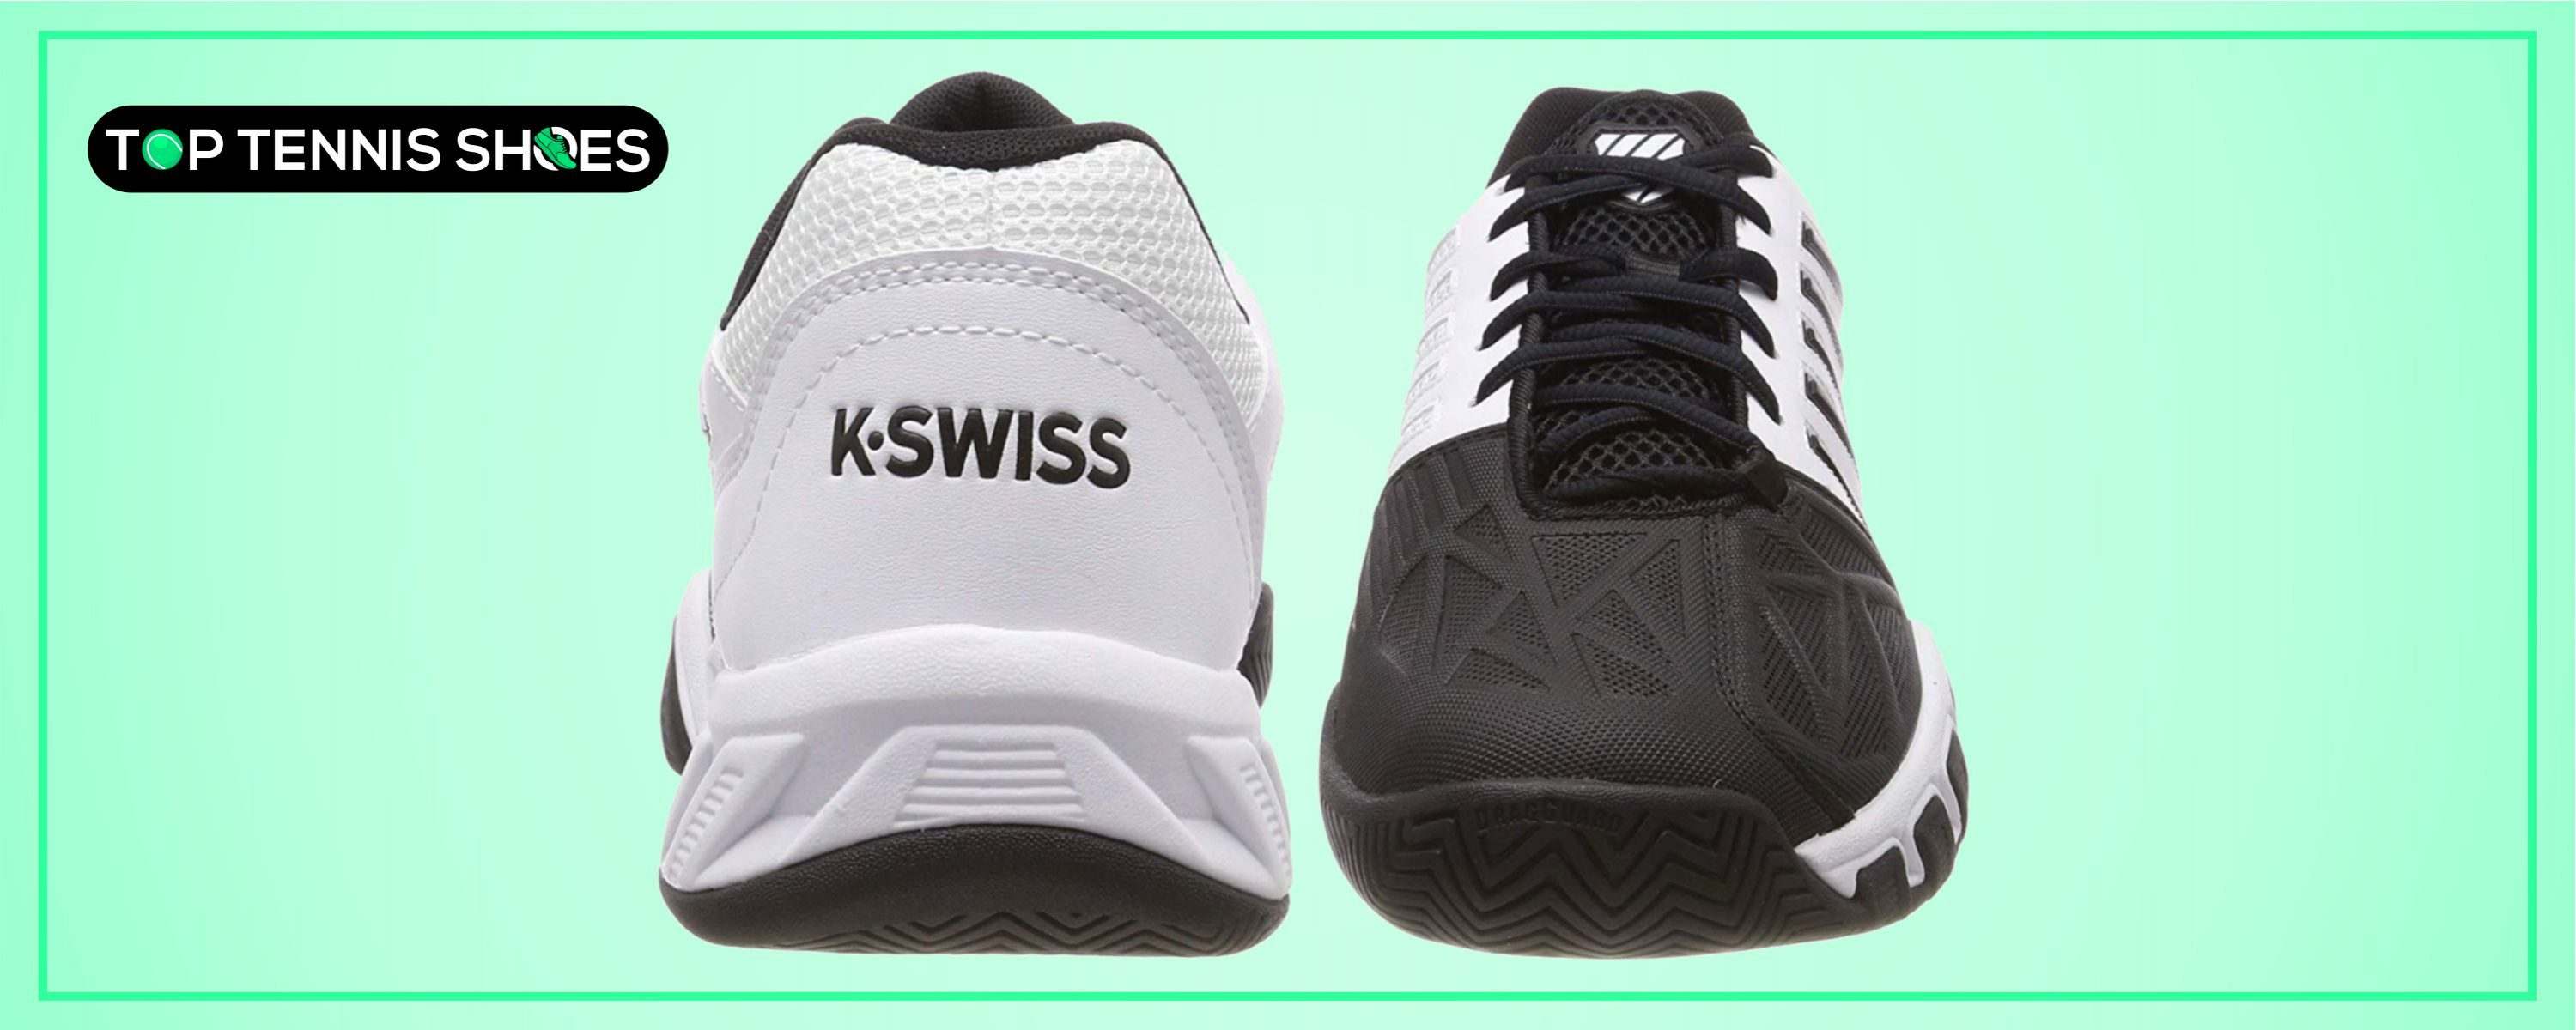 best tennis shoes for flat feet reviews